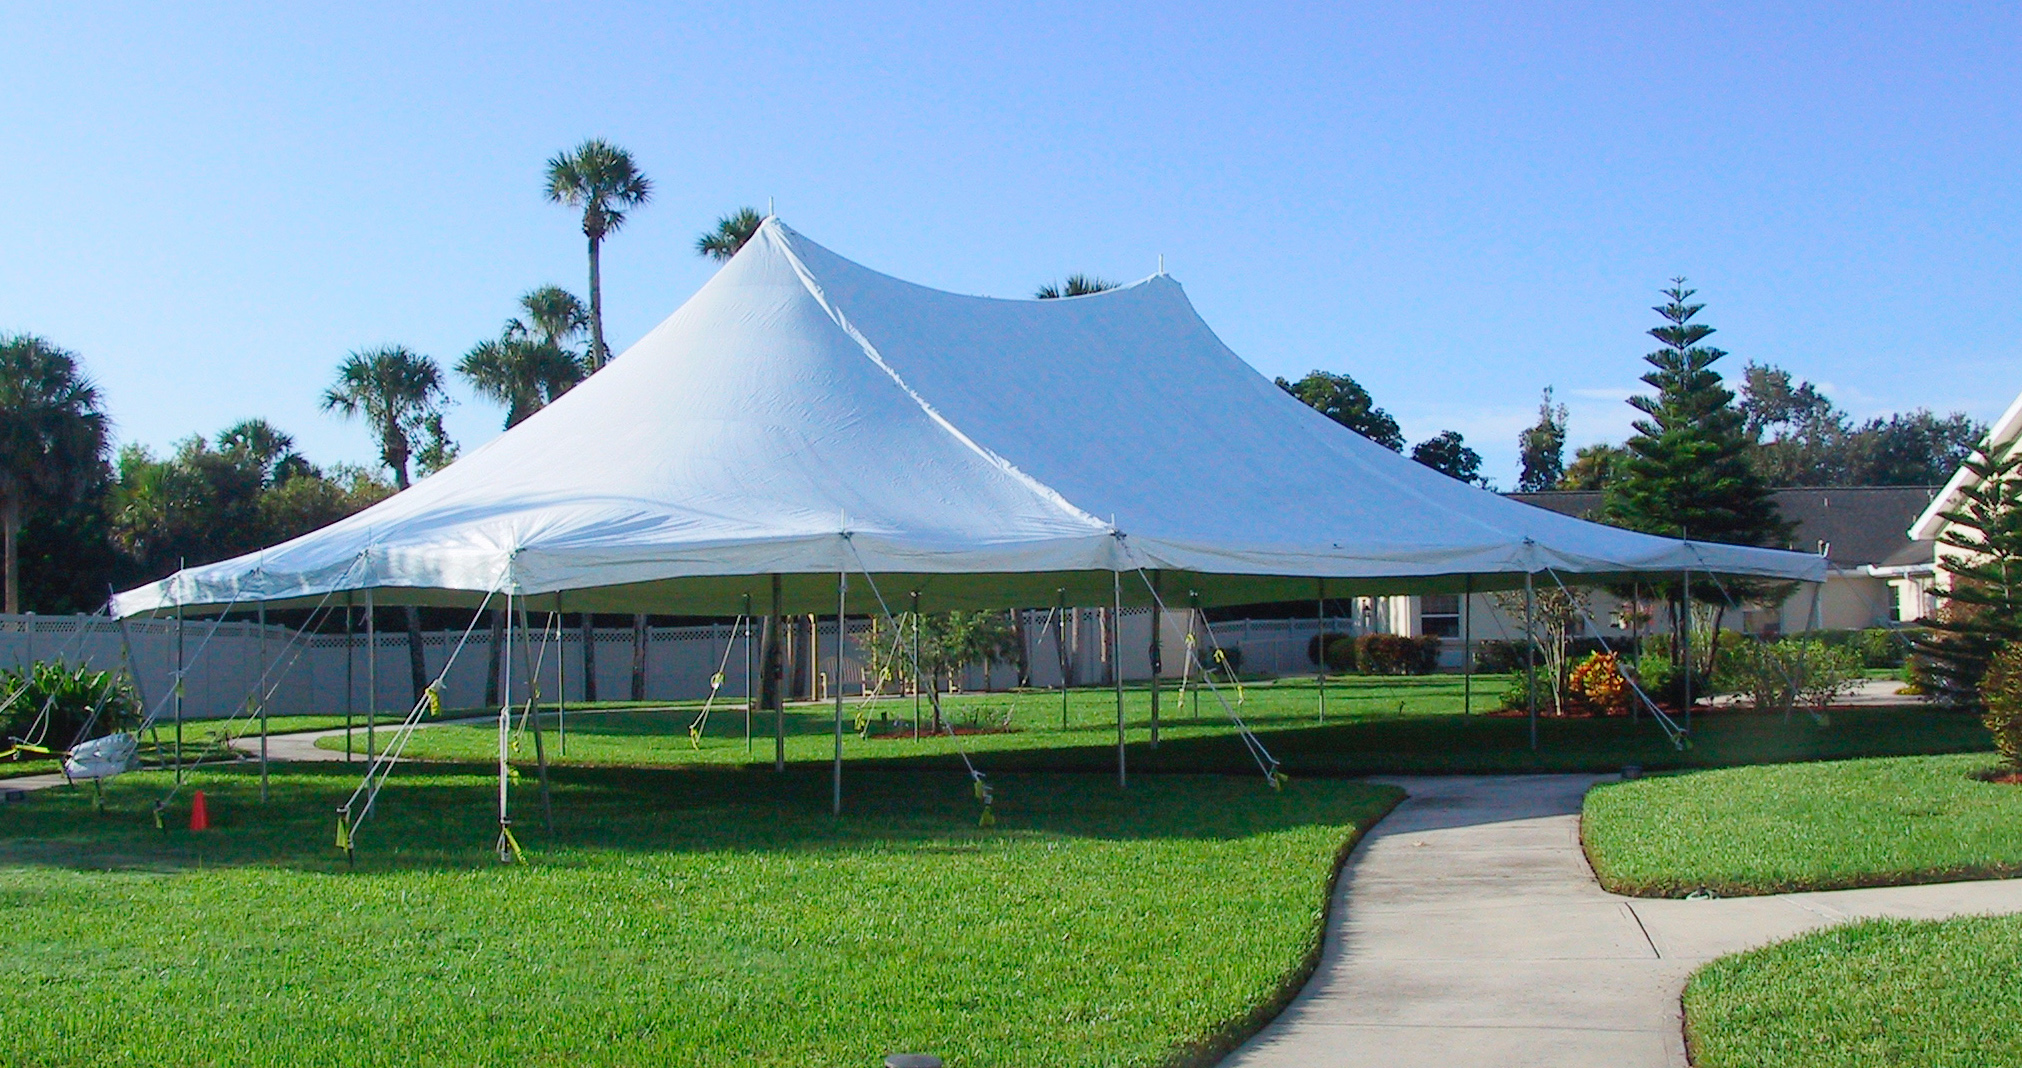 Traditional Pole Tents